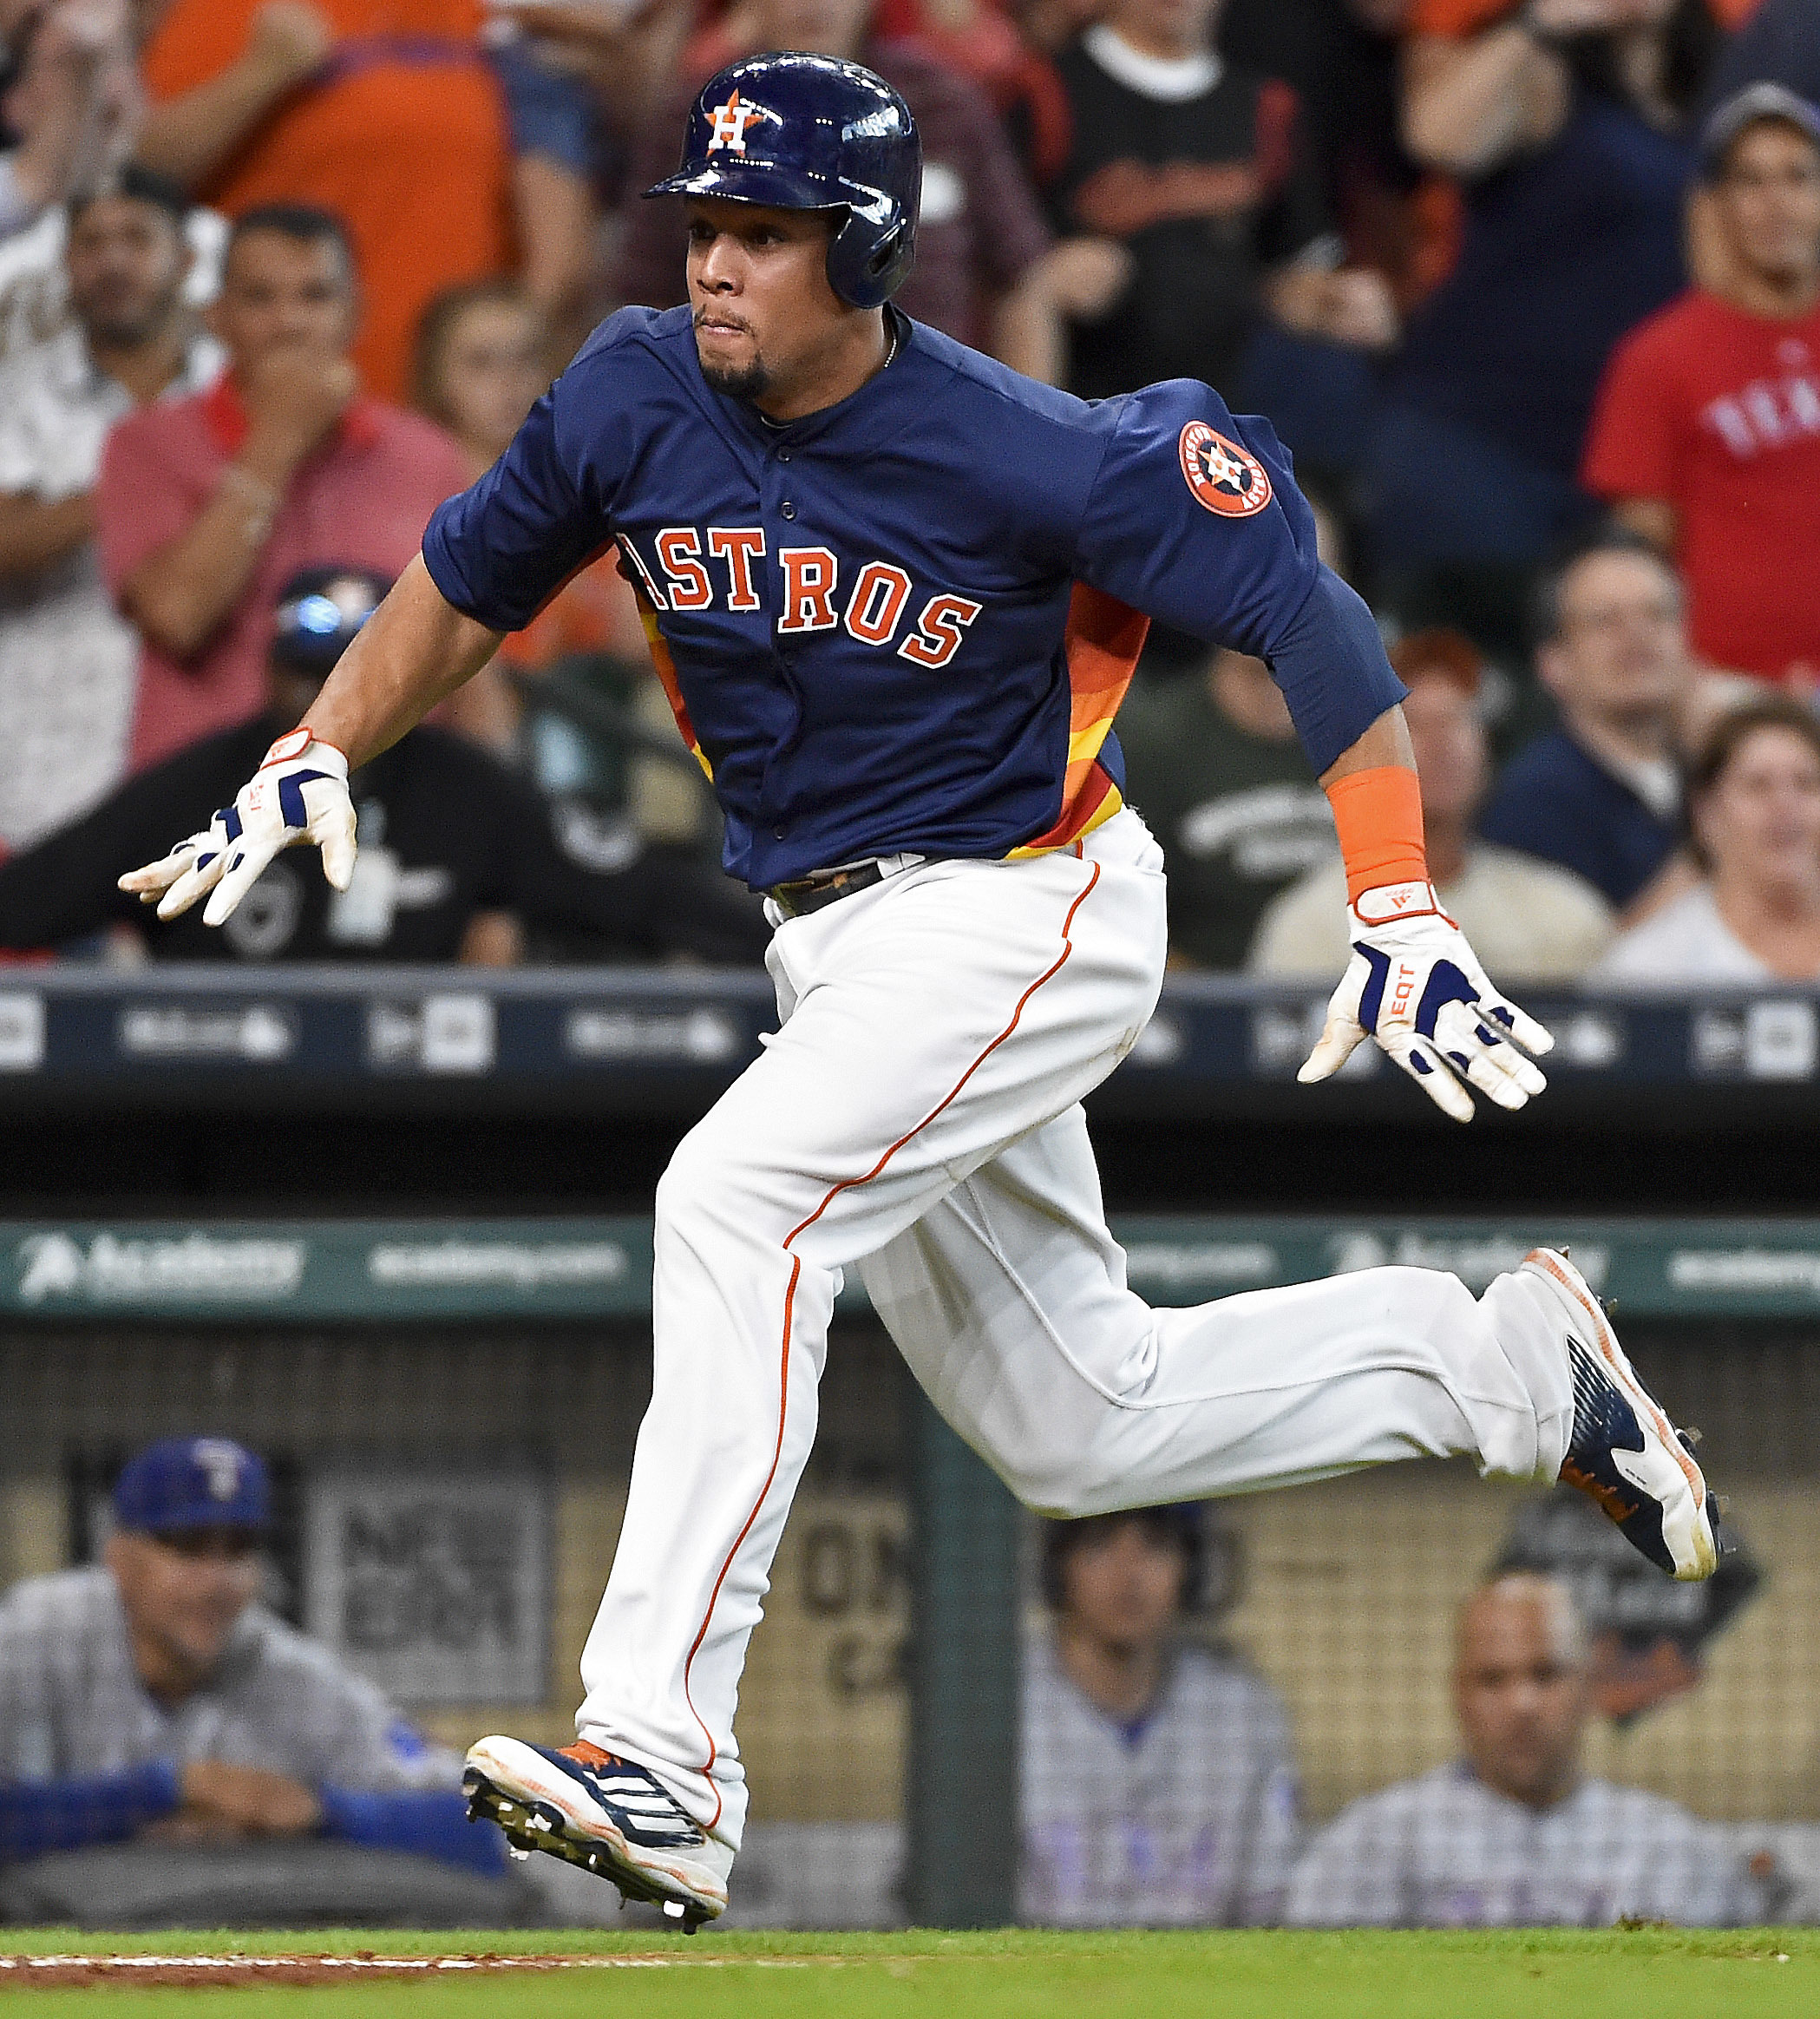 Houston Astros pinch-runner Carlos Gomez runs to home to score the tying run on Tony Kemp's single in the ninth inning of a baseball game against the Texas Rangers, Sunday, Aug. 7, 2016, in Houston. (AP Photo/Eric Christian Smith)